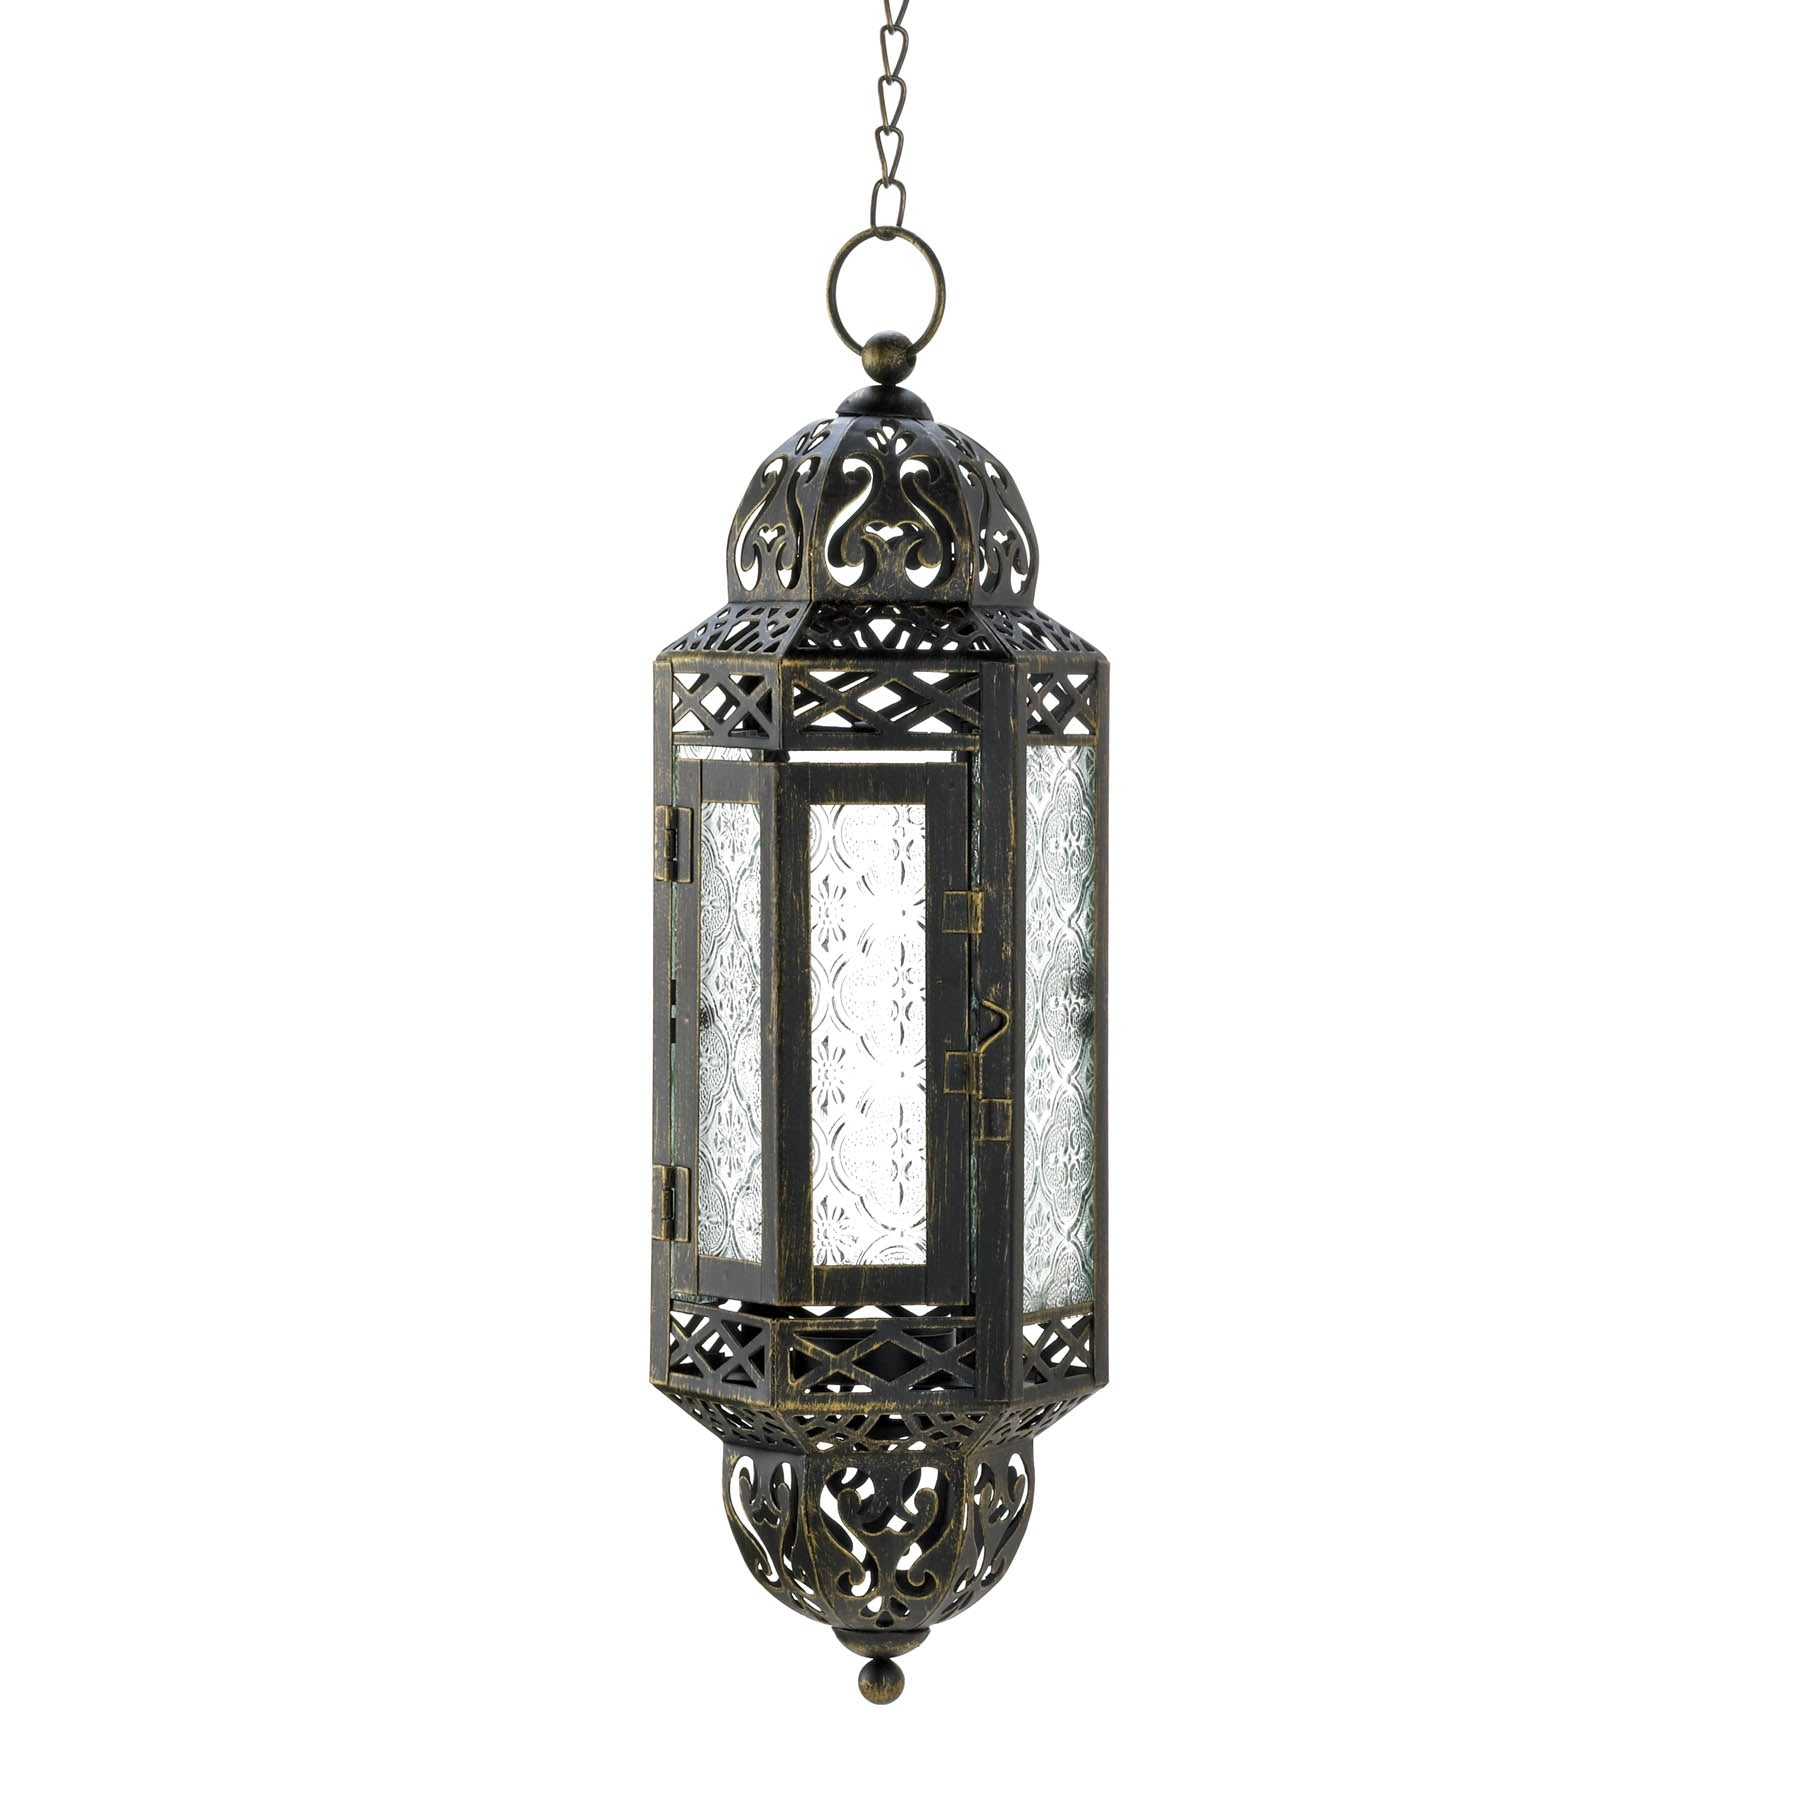 Gallery of Light Victorian Hanging Candle Lantern - 10015424